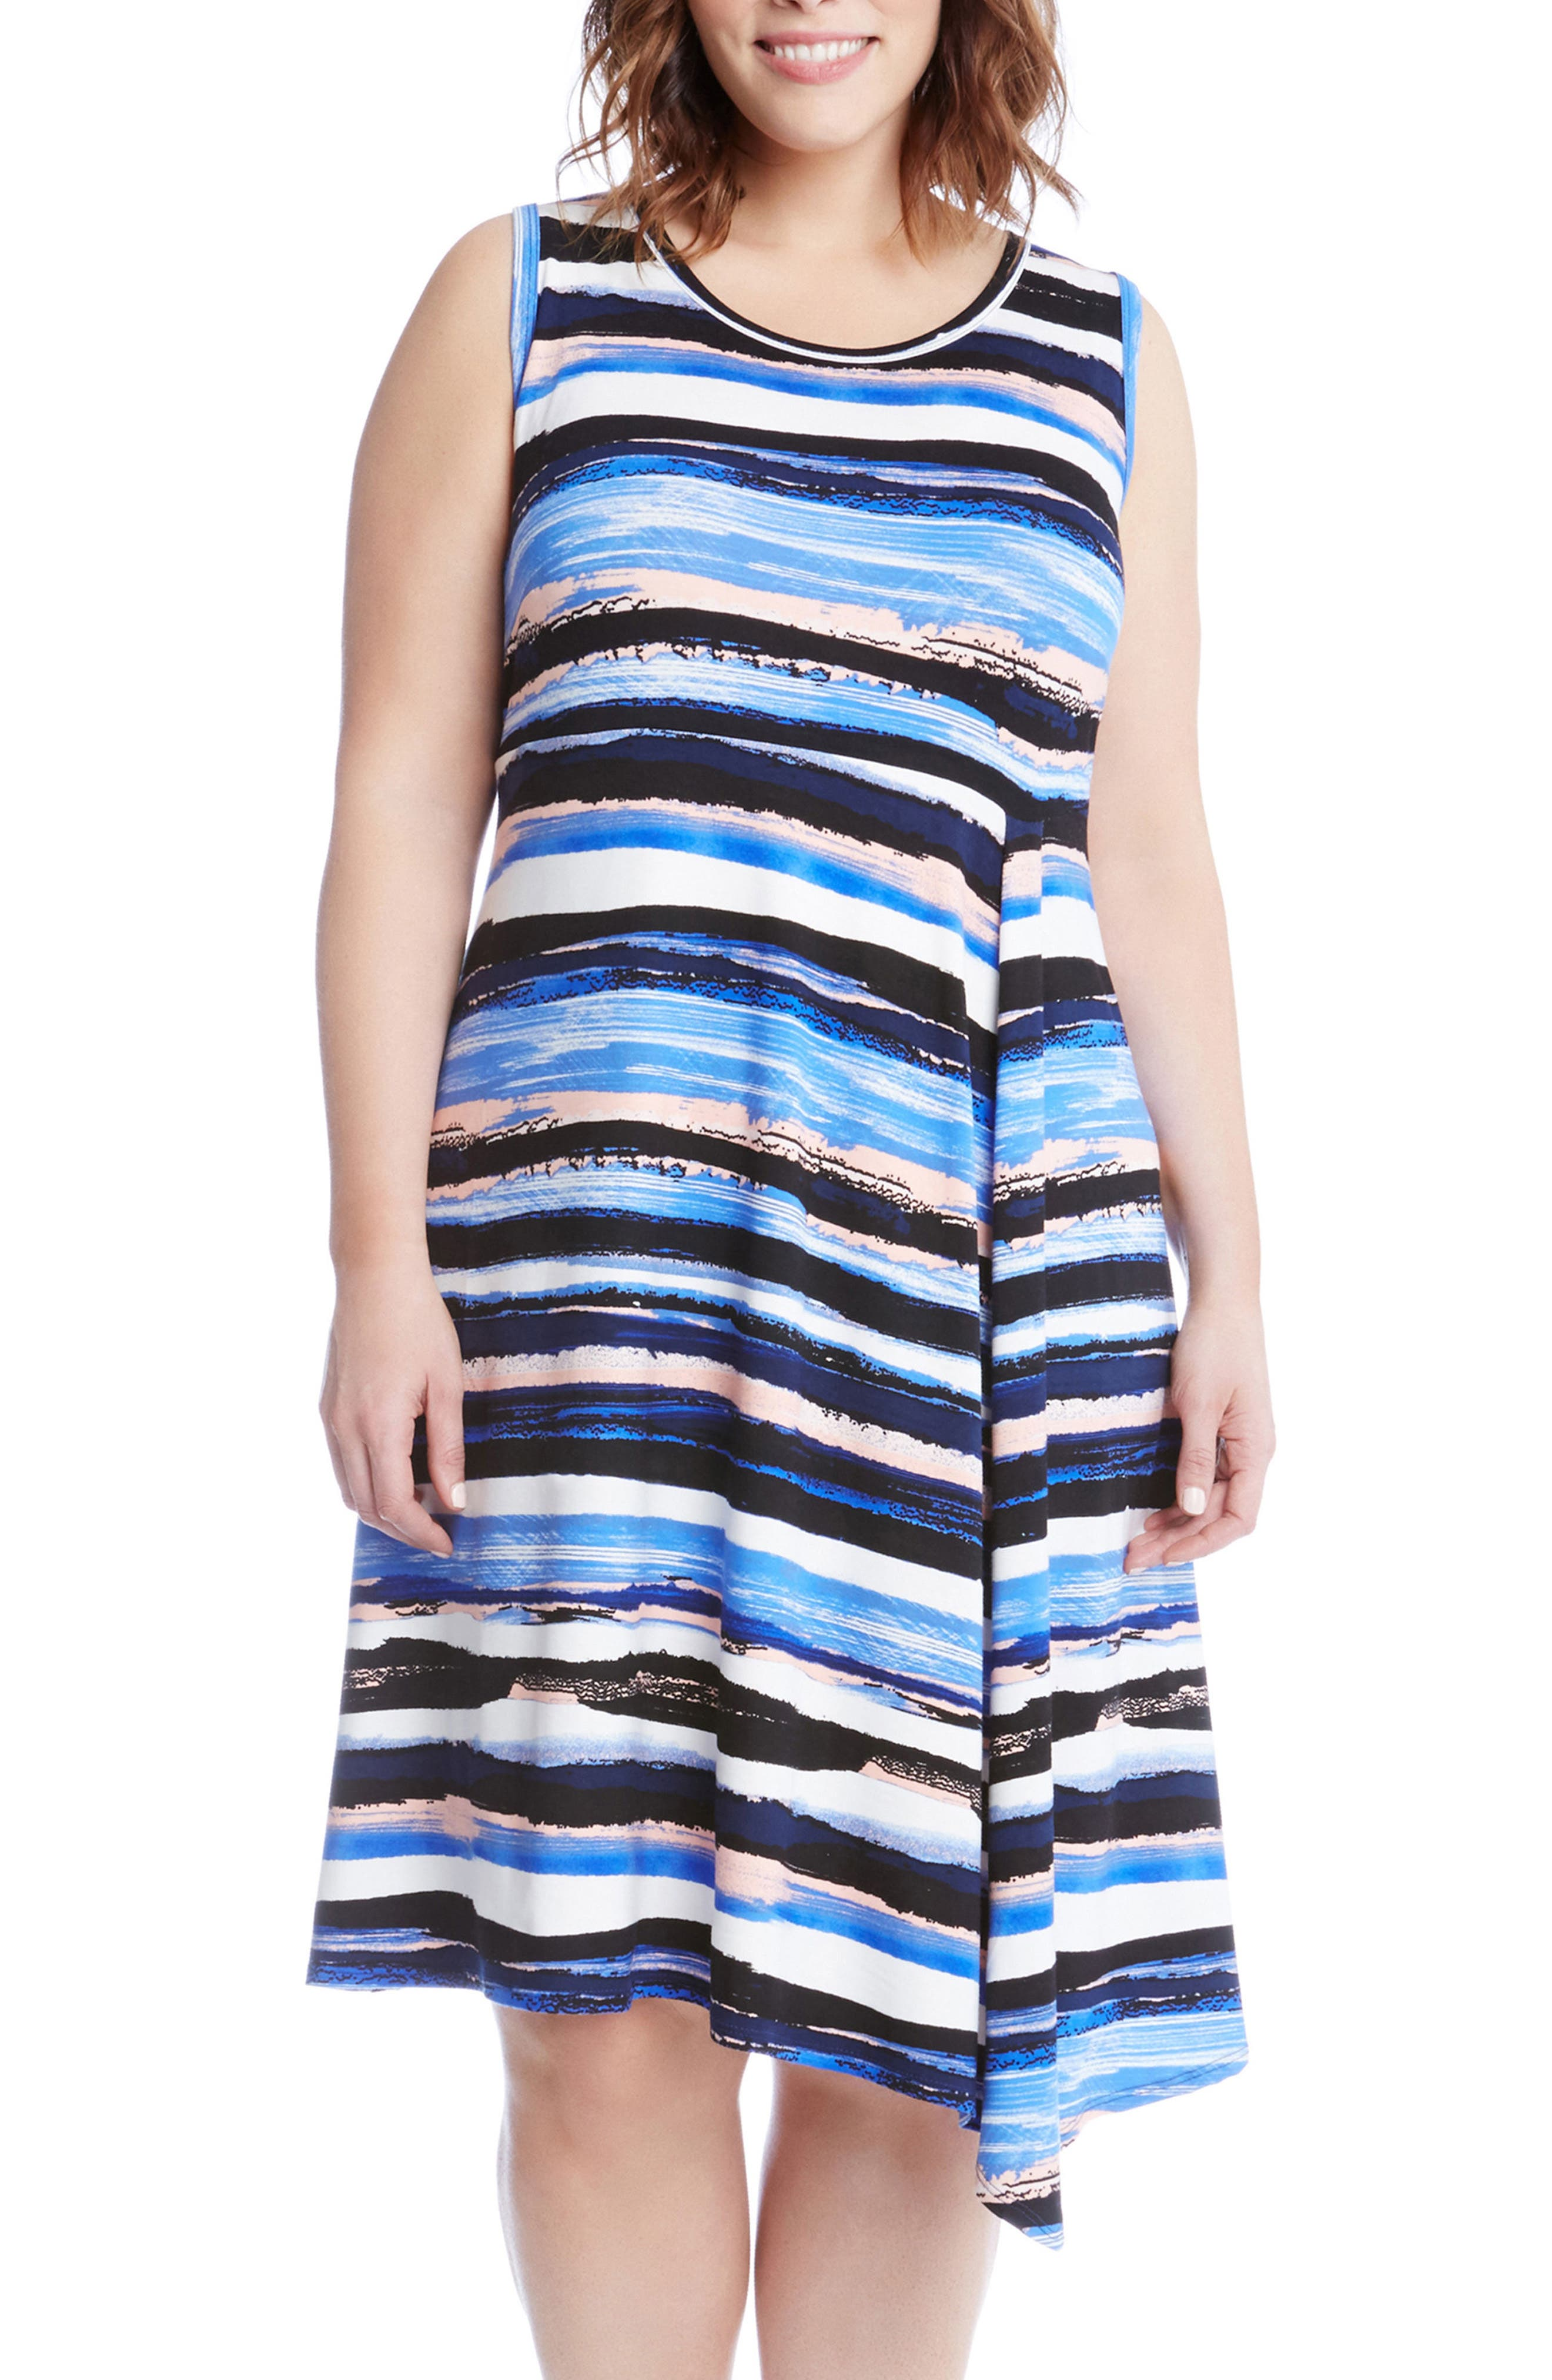 Alternate Image 1 Selected - KAren Kane Painted Stripe A-Line Dress (Plus Size)